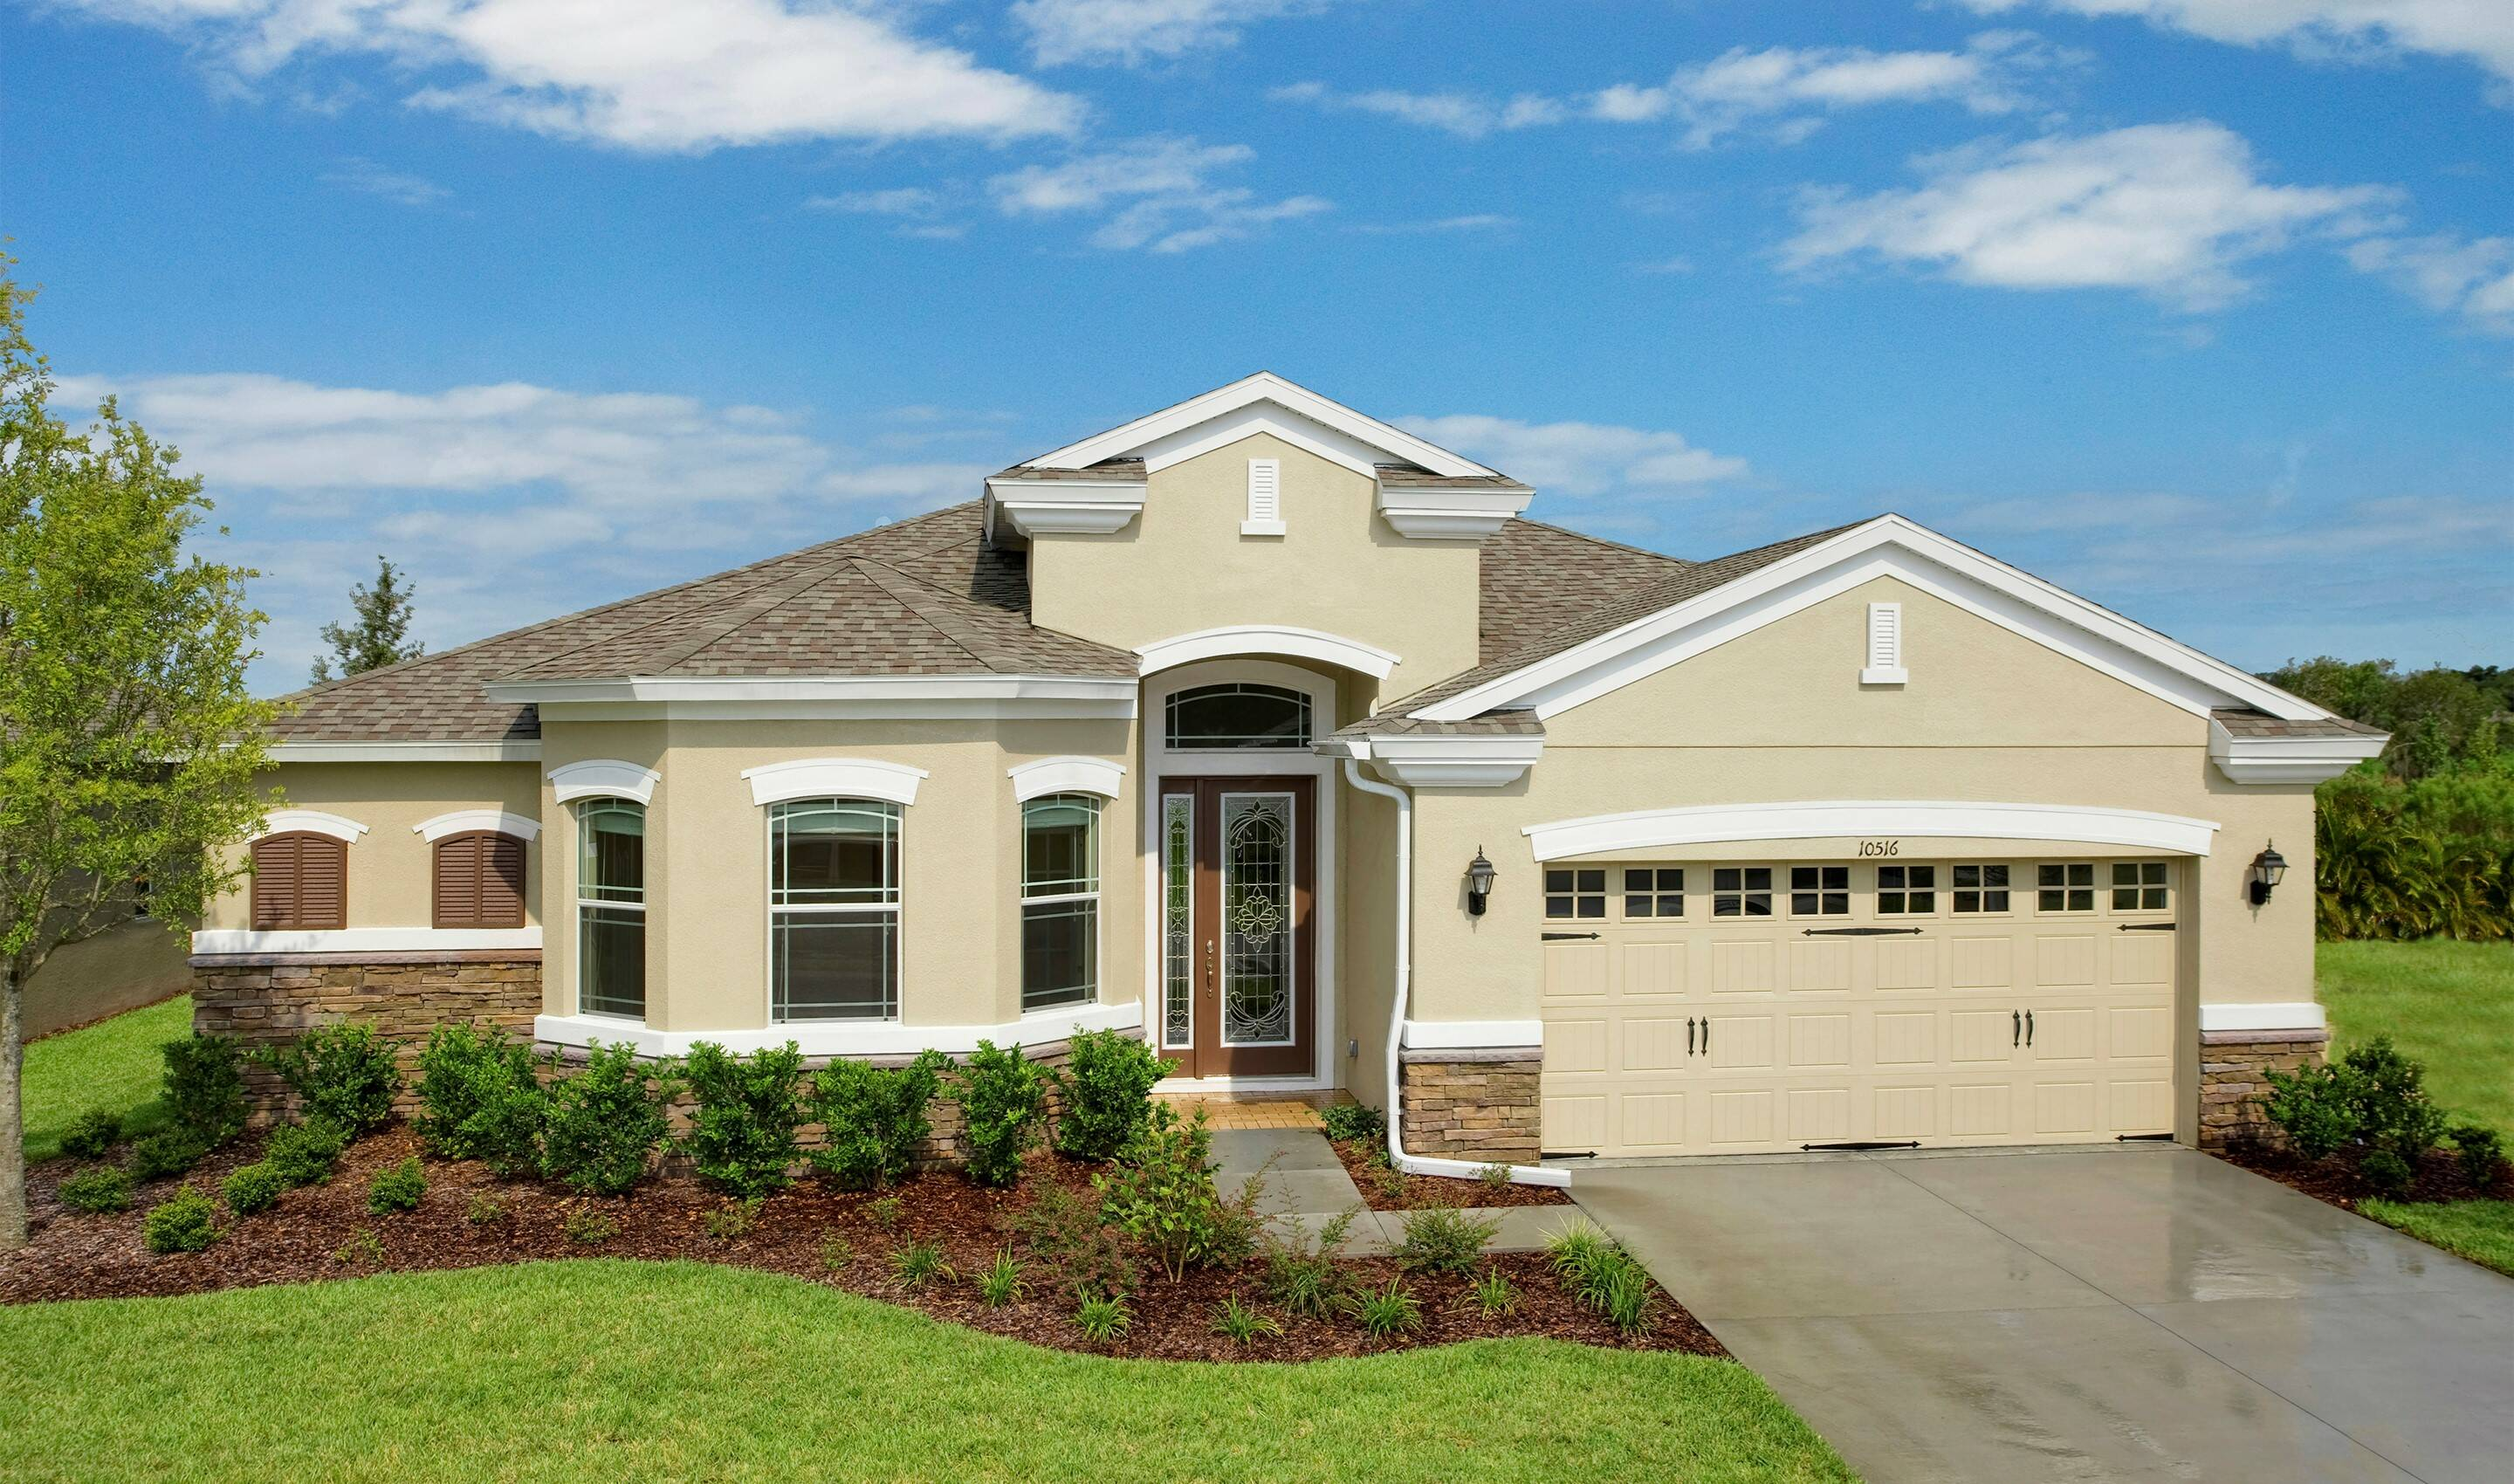 Tampa bay golf and country club new homes in san antonio fl for New source homes